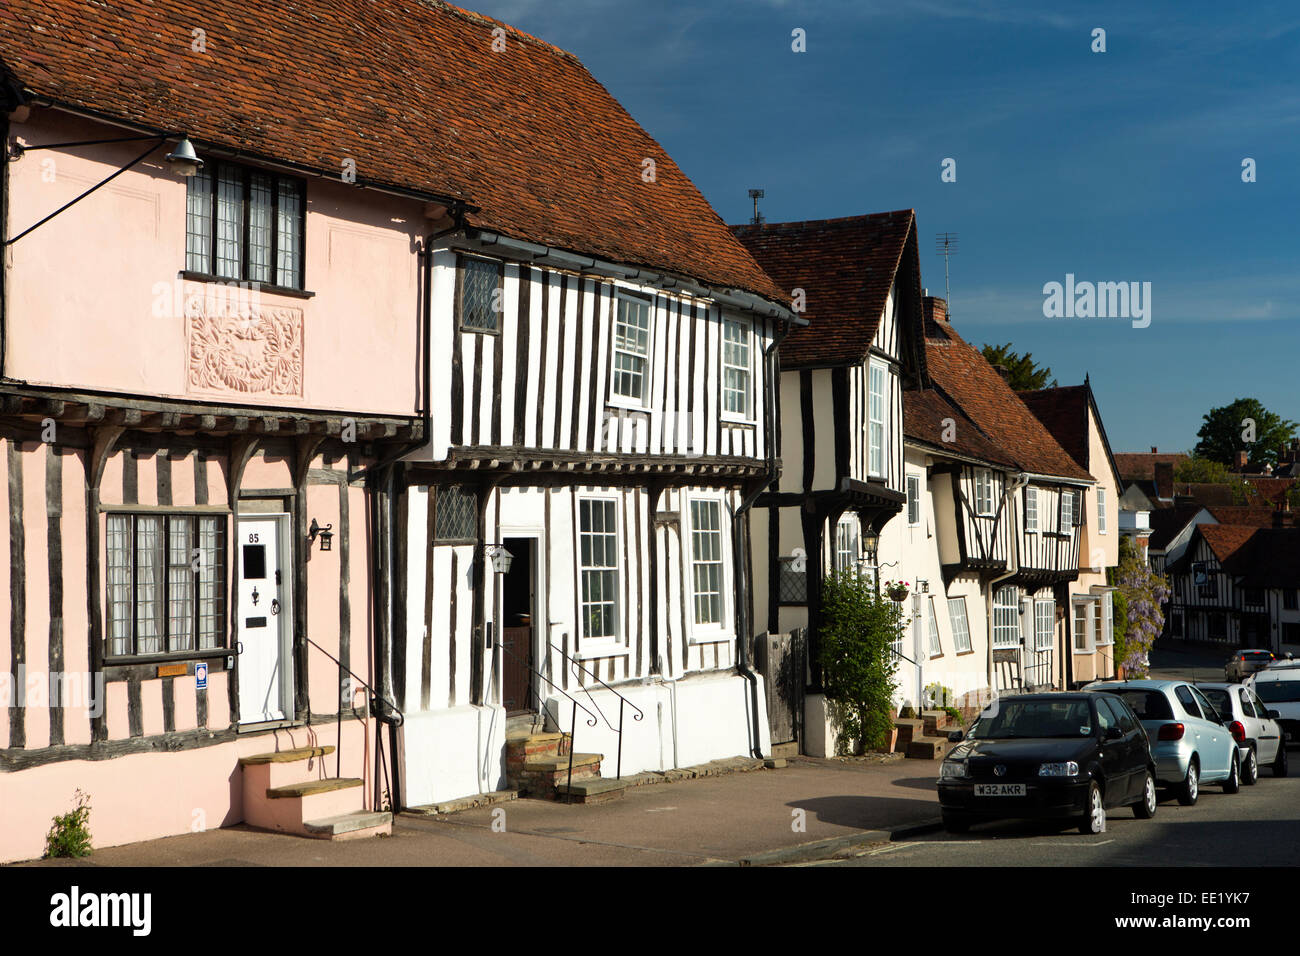 UK England, Suffolk, Lavenham, Church Street, pargeting on gable of timber framed houses Stock Photo